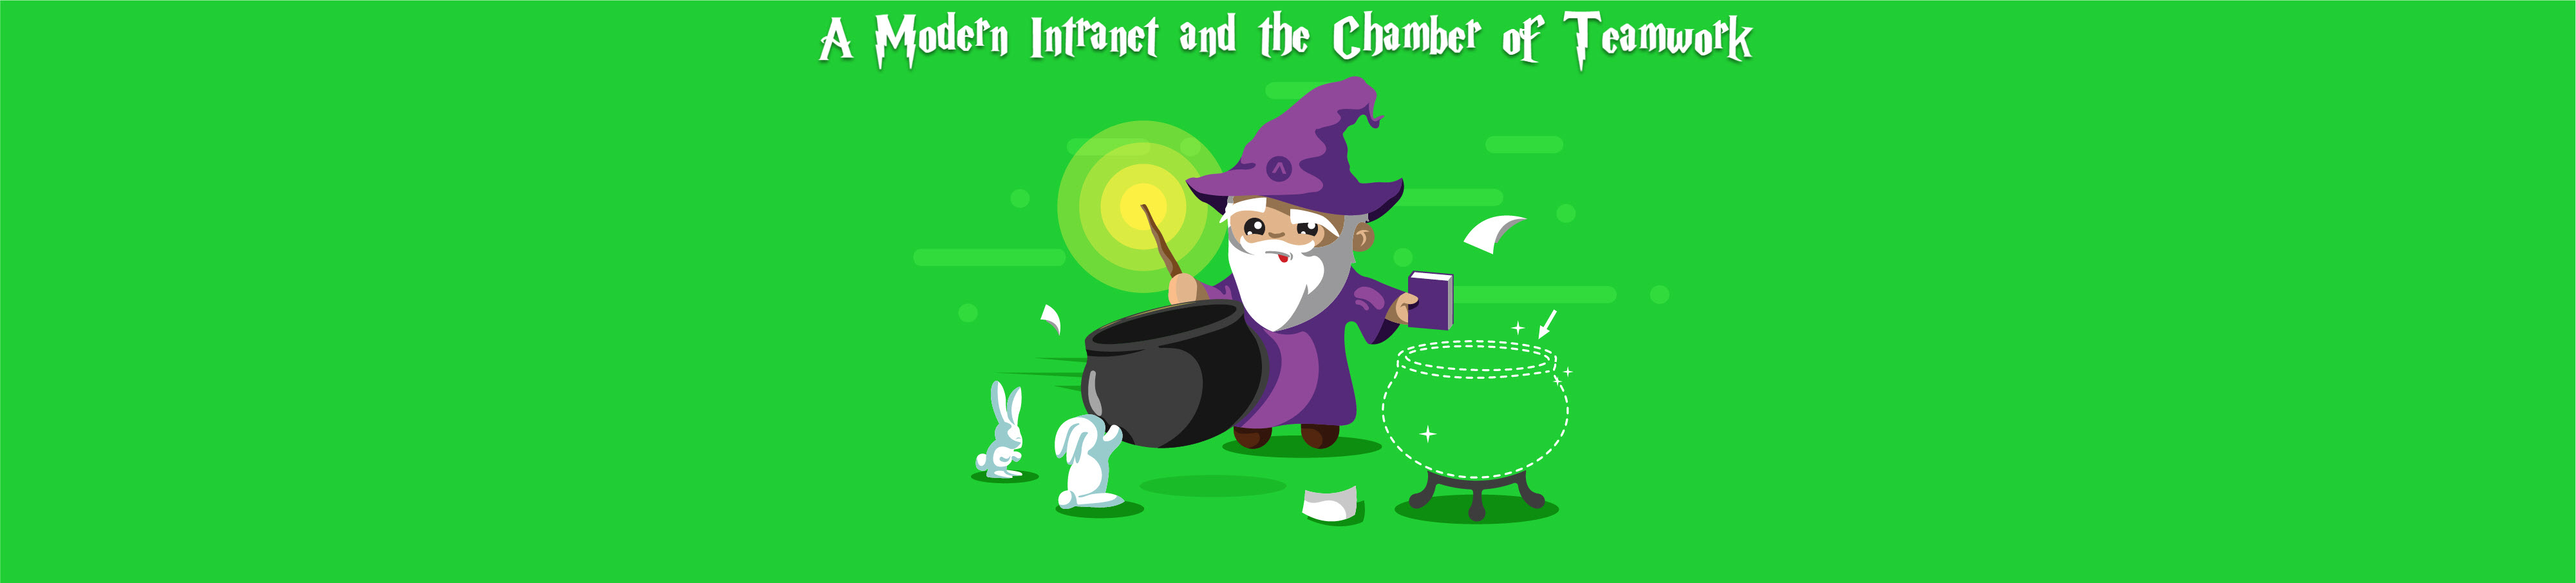 Coming soon - A Modern Intranet and the Chamber of Teamwork